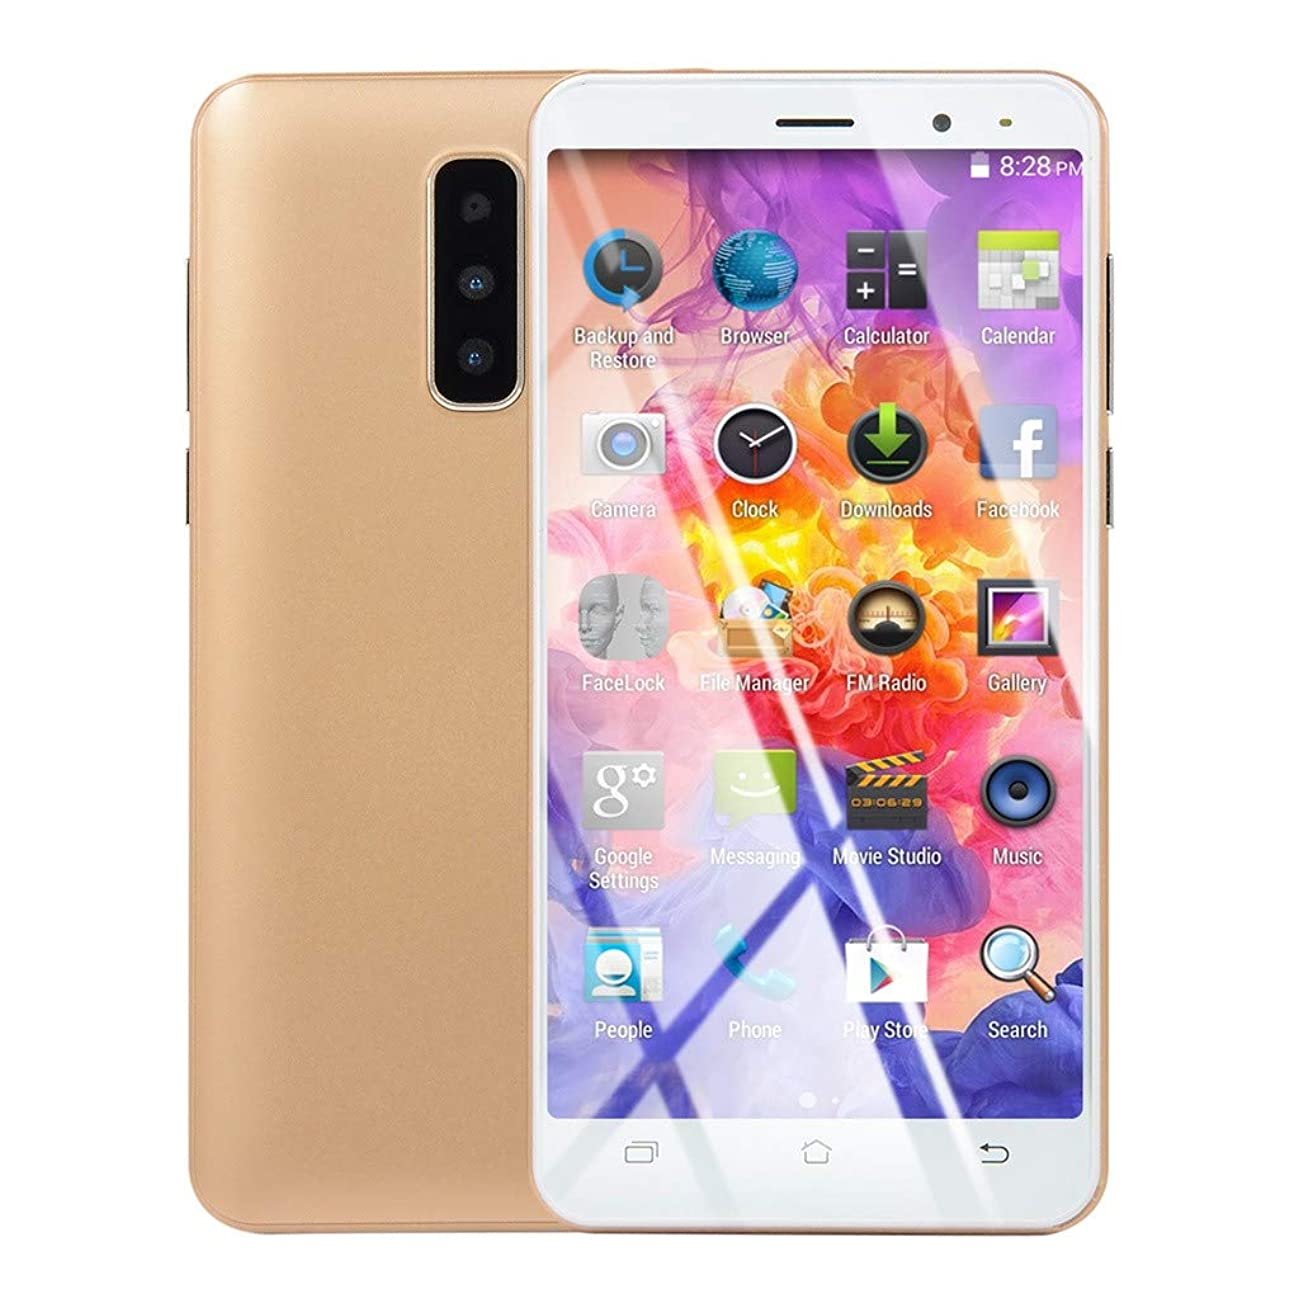 Redvive Top New 5.0 inch Dual HD Camera Android 6.0 1G+4G GPS 3G Call Mobile Phone (US Plug)